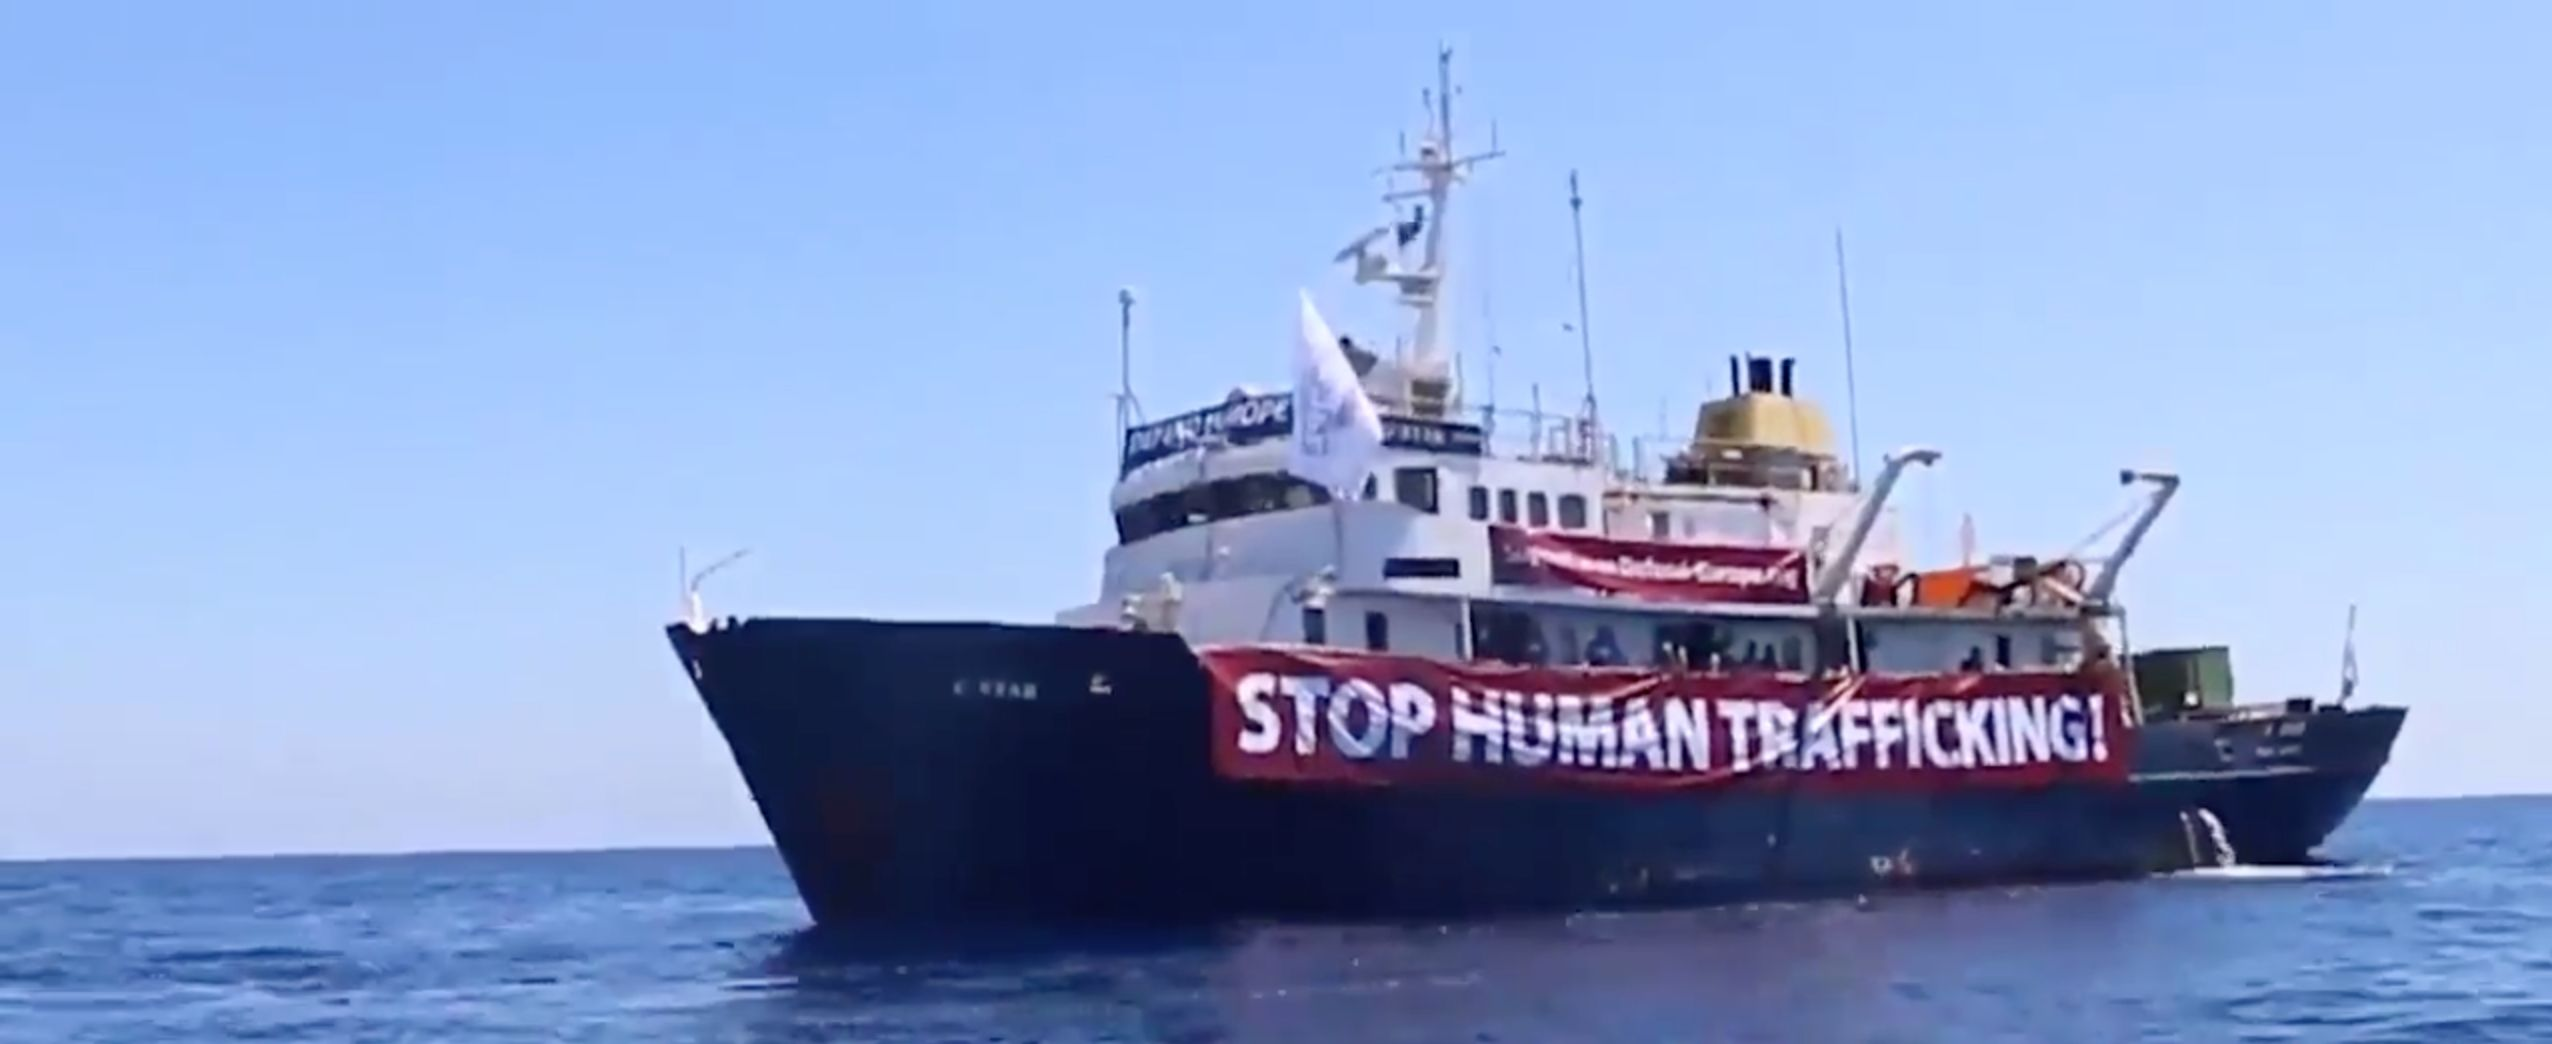 A Refugee Rescue Boat Has Been Sent To Help Anti-Refugee Group Defend